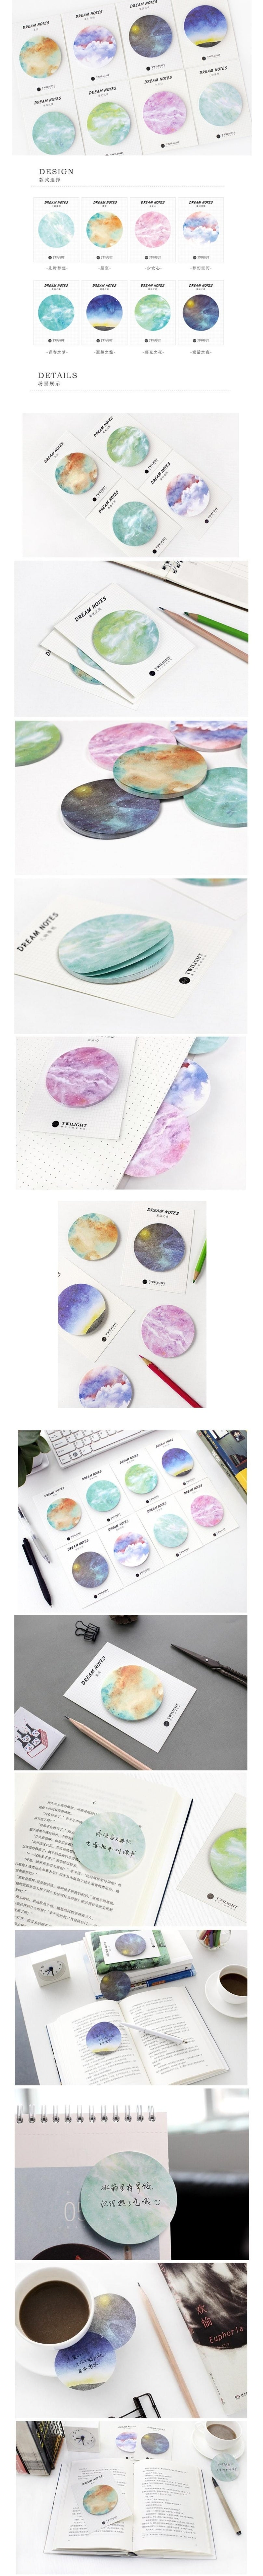 Galaxy Dream Sticky Notes - Otrio Stationery - Cute Pastel Planet Memo Pads